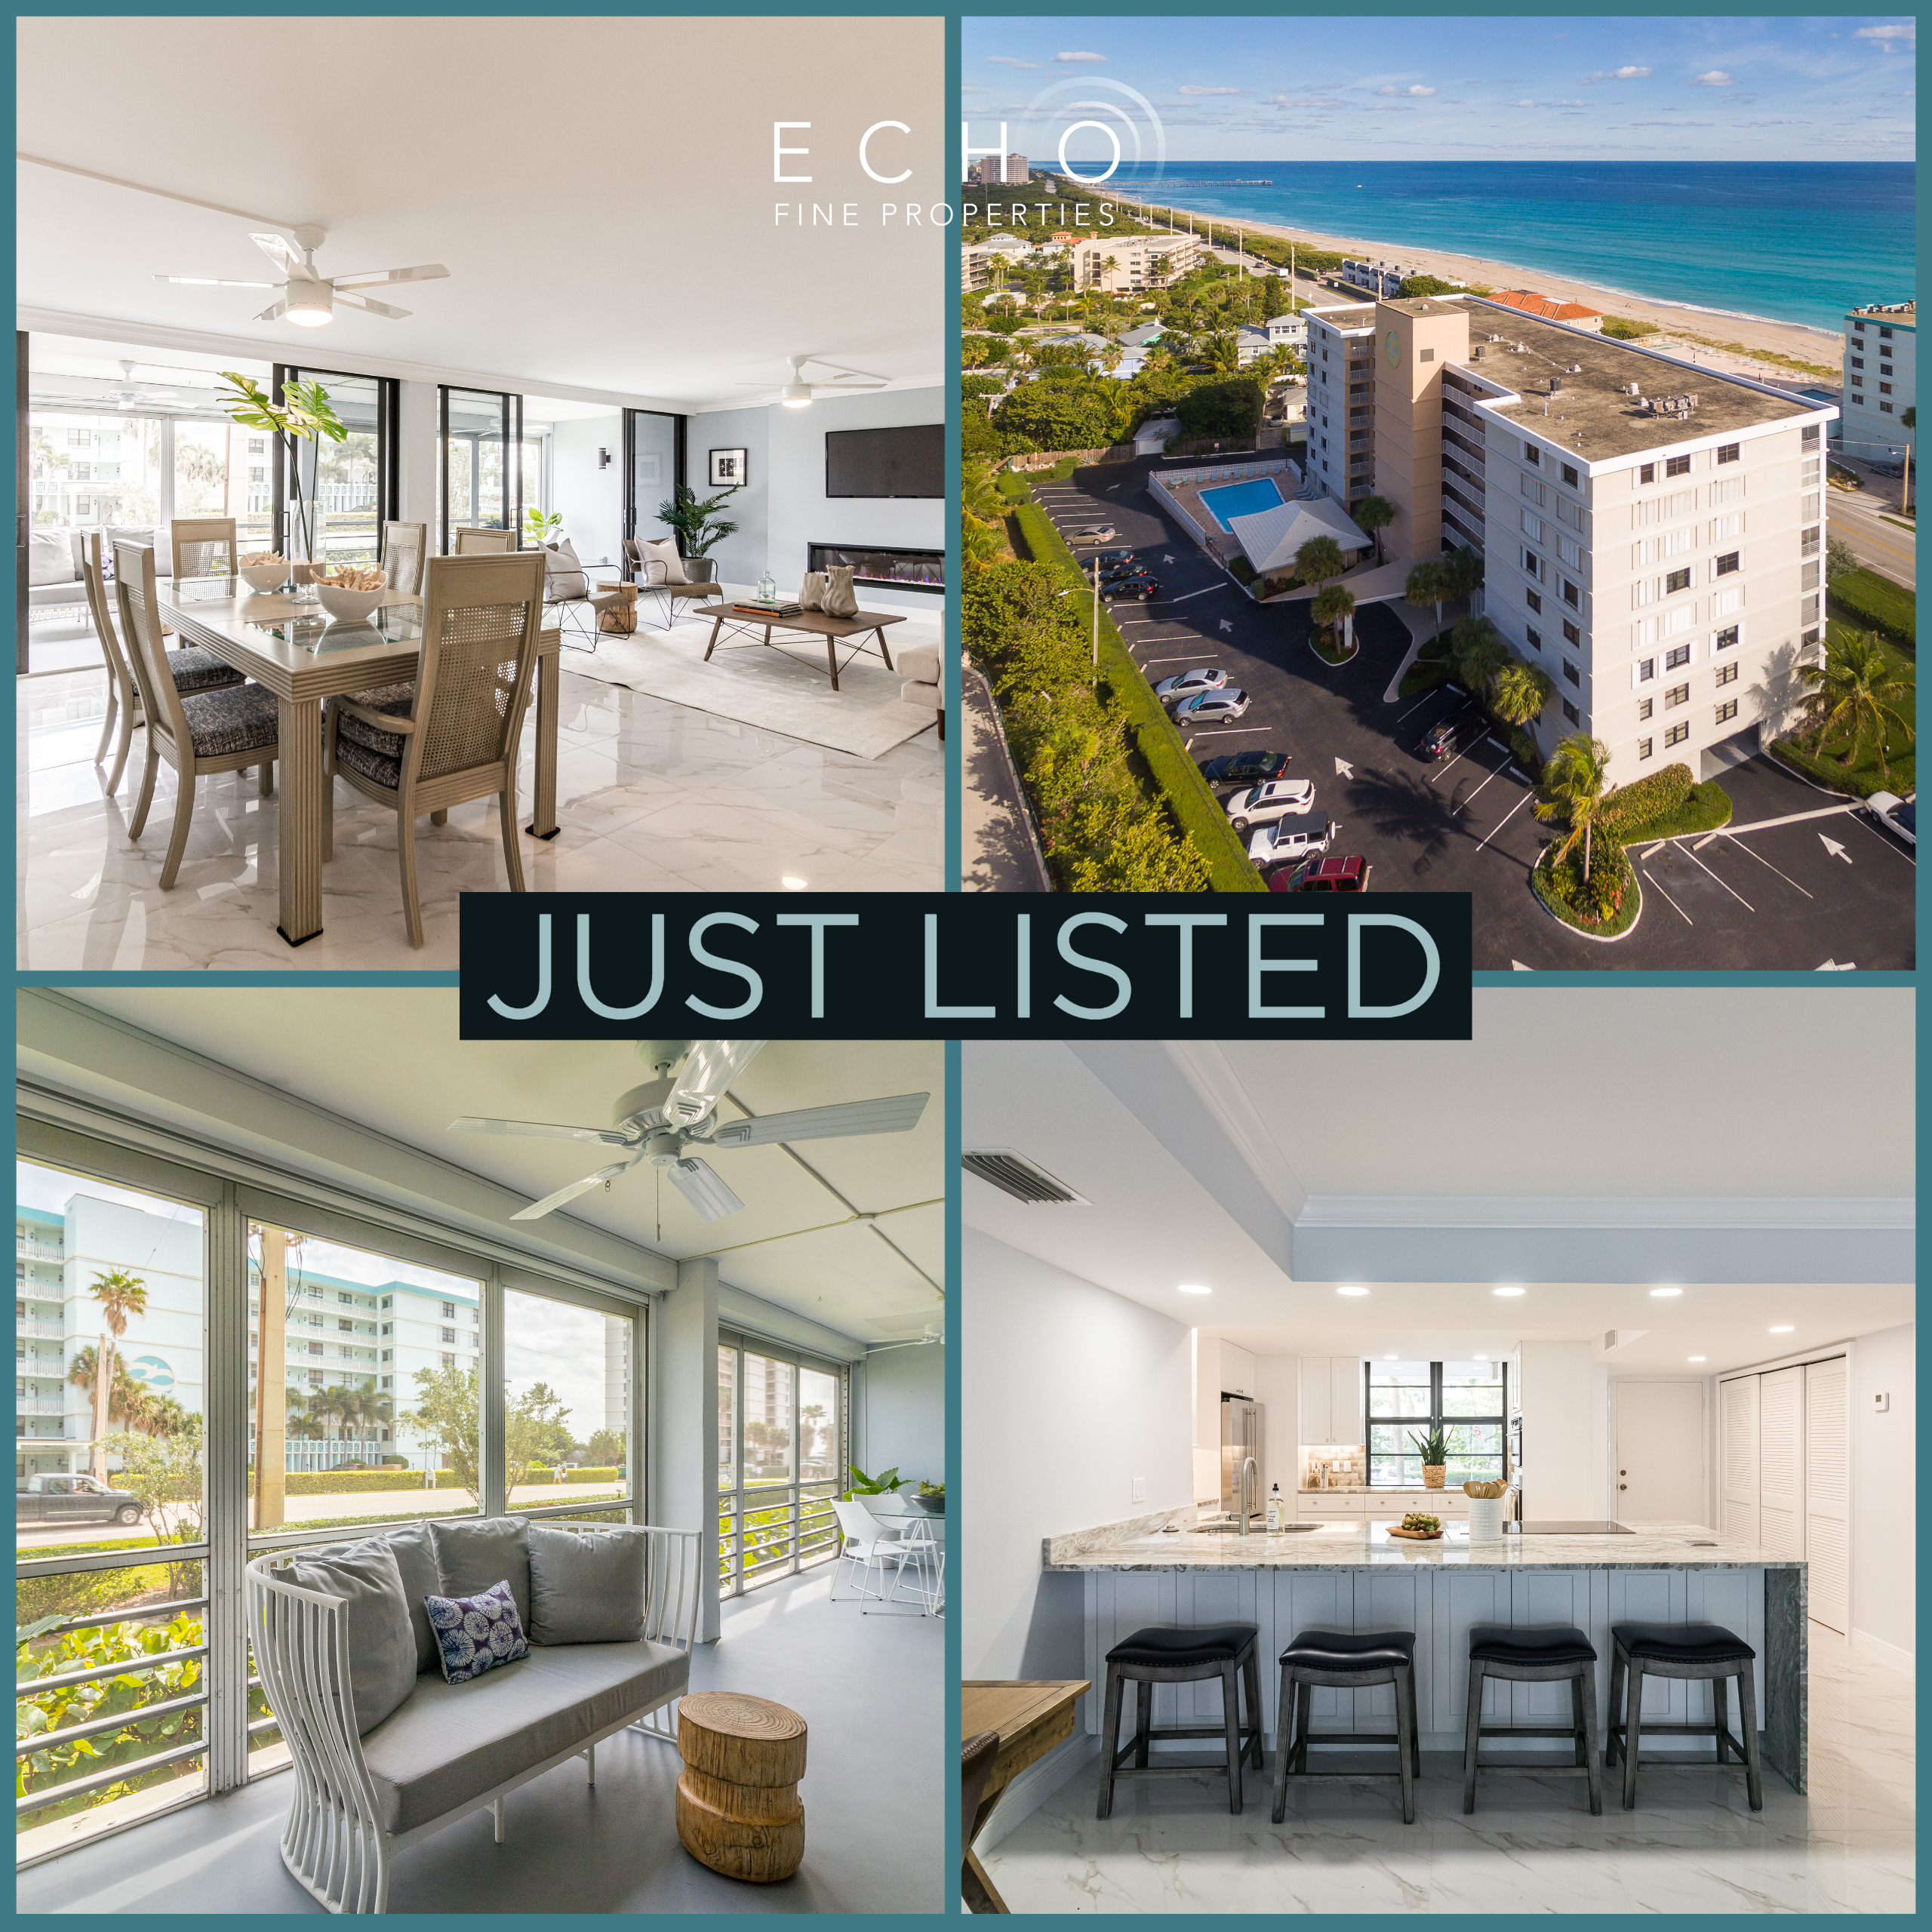 Just Listed | Feel the Joy of Home ECHOnomics in Juno Beach | 911 Ocean Drive #103